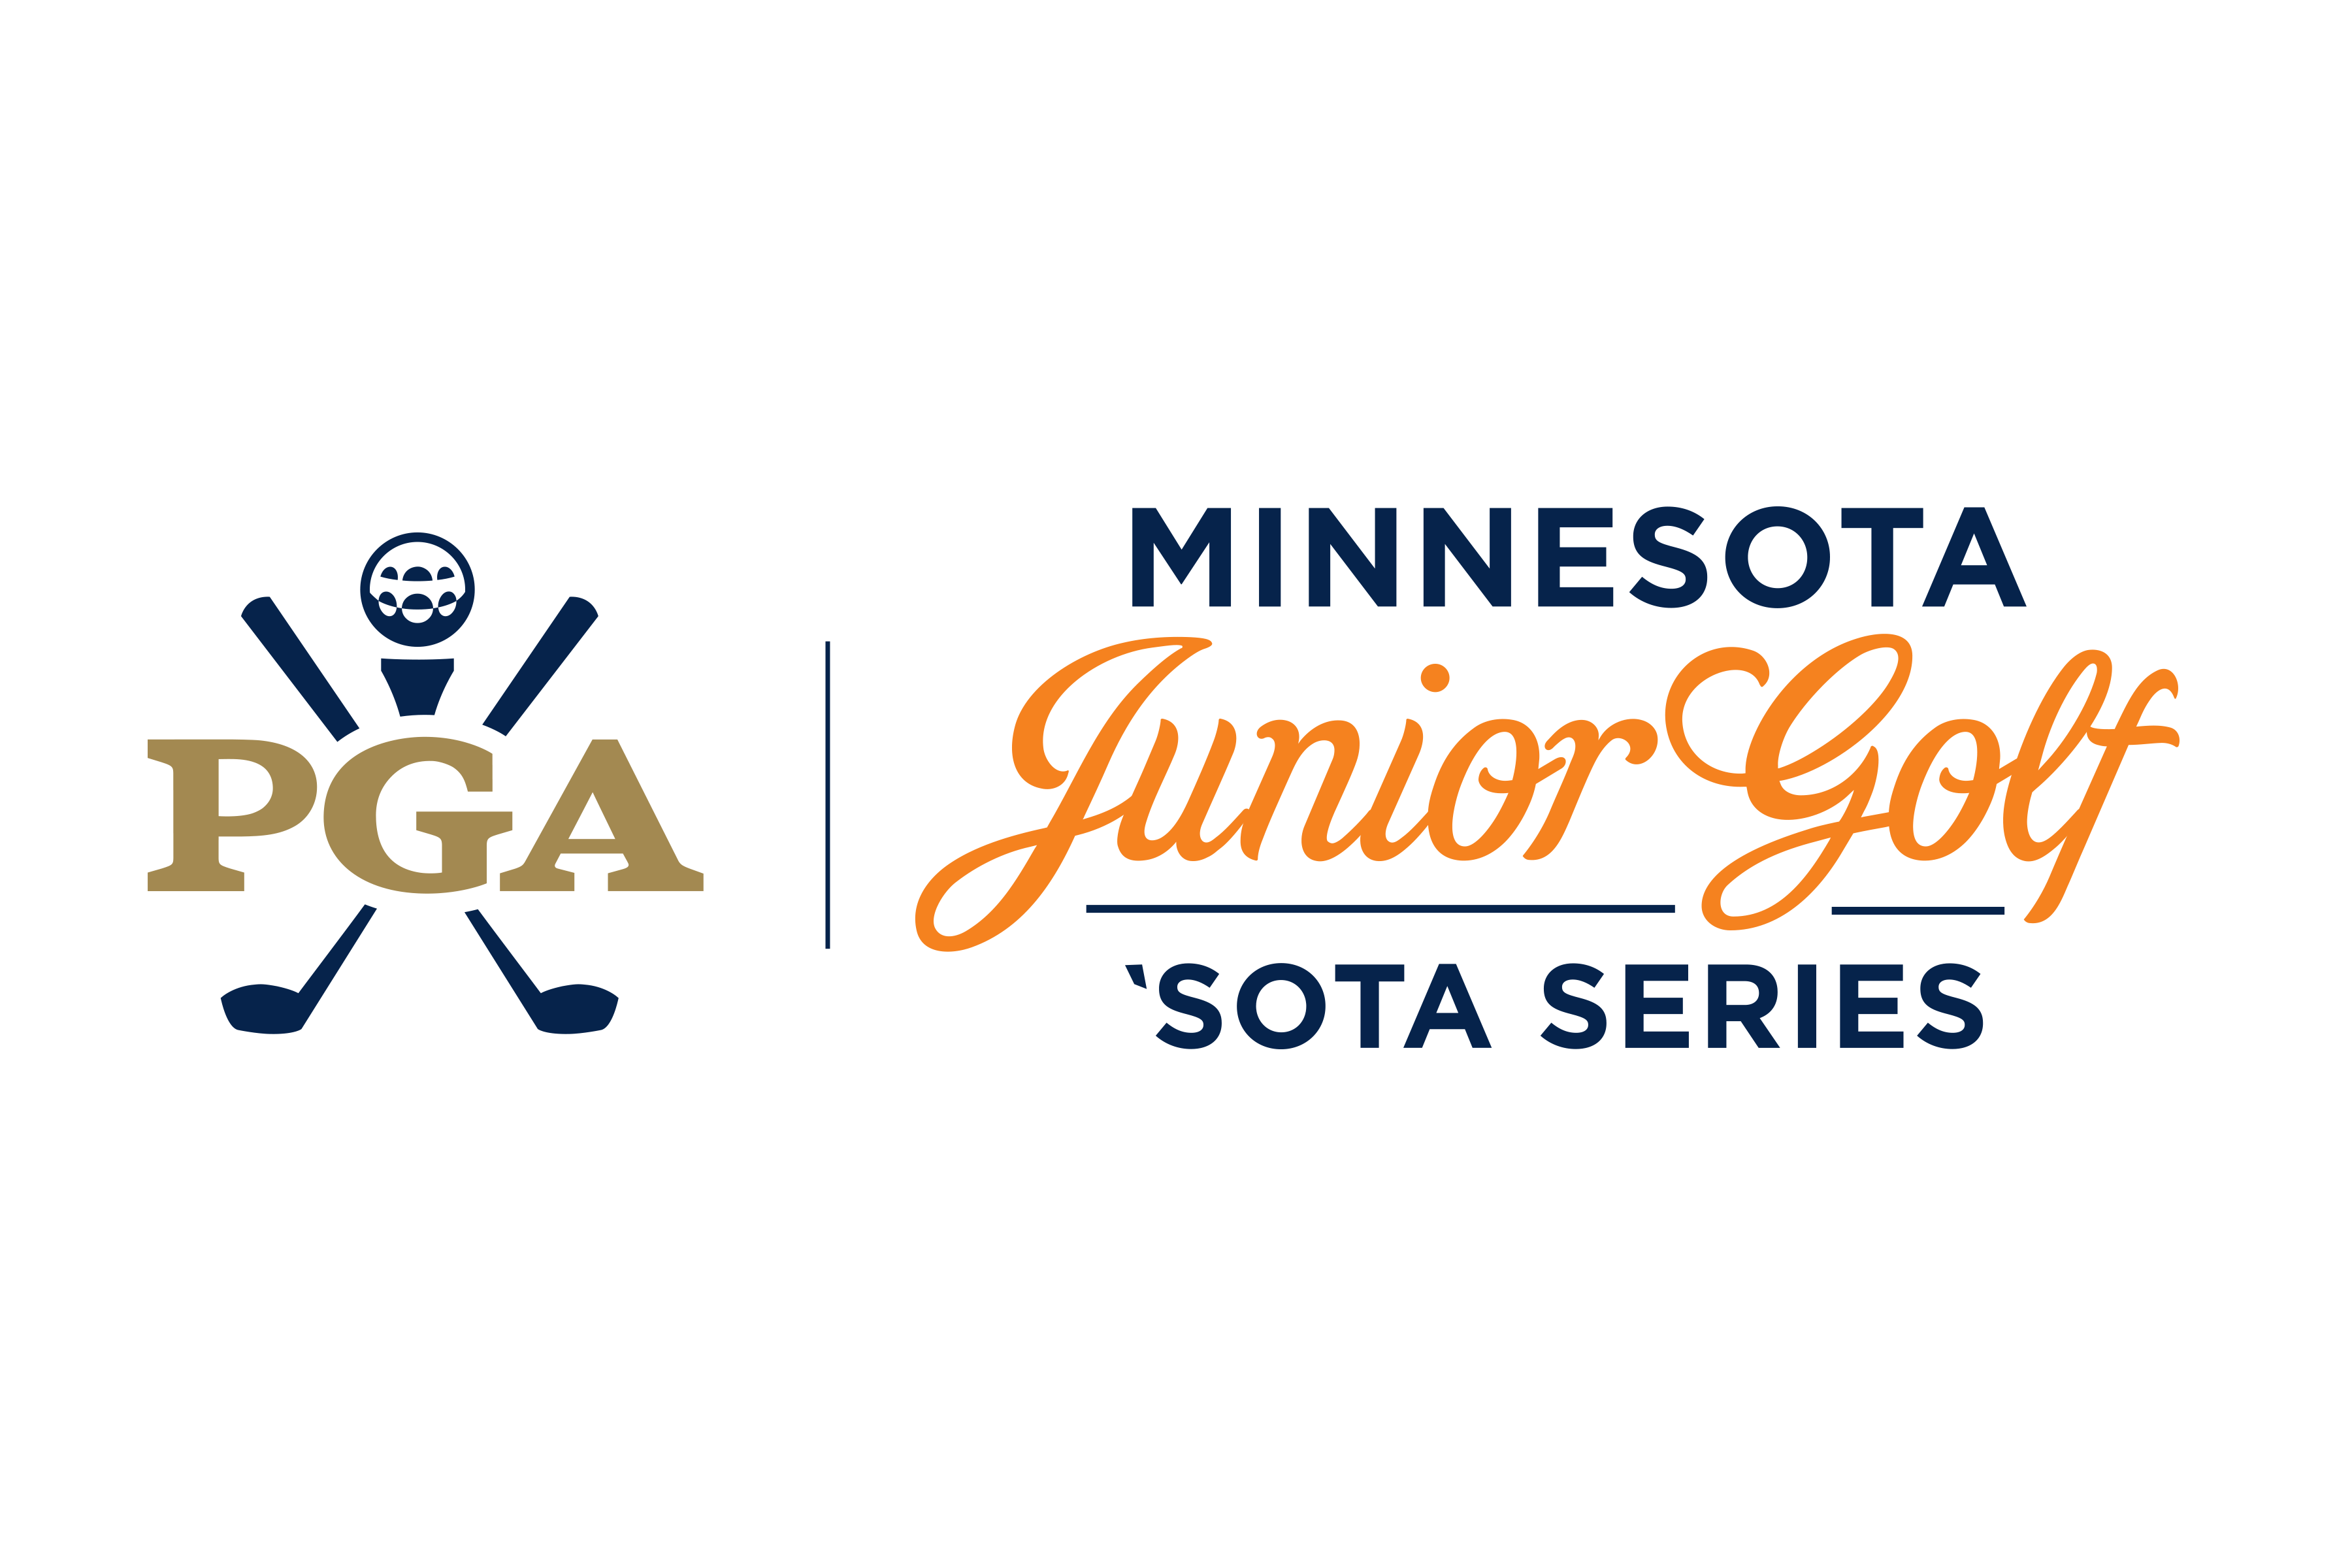 Mn pga juniorgolfsotaseries